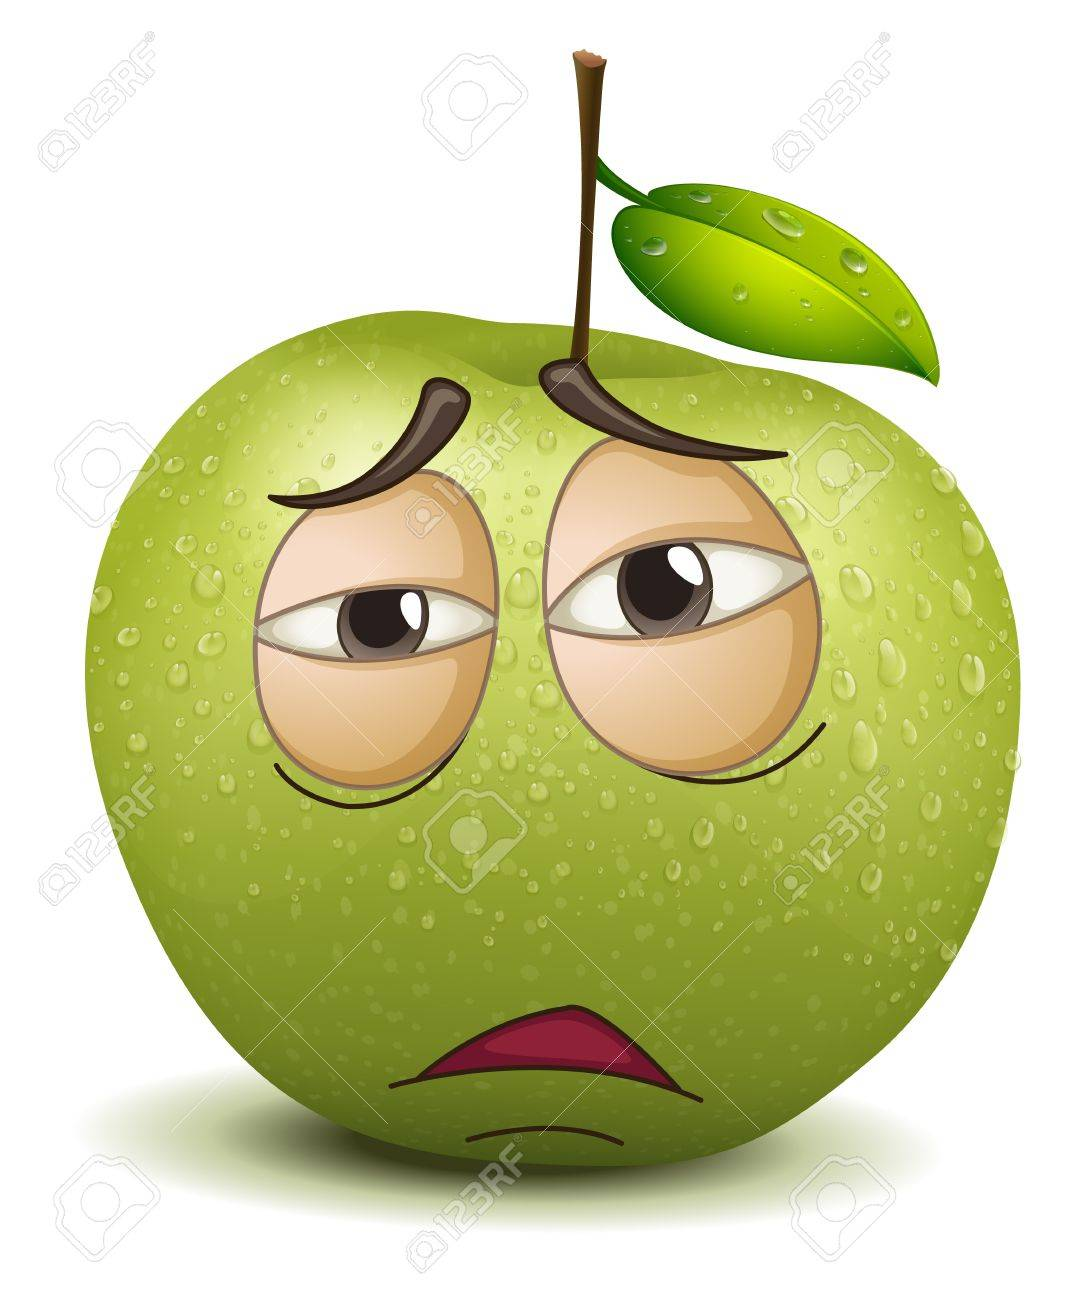 illustration of a sad apple smiley on a white background Stock Vector - 15378878